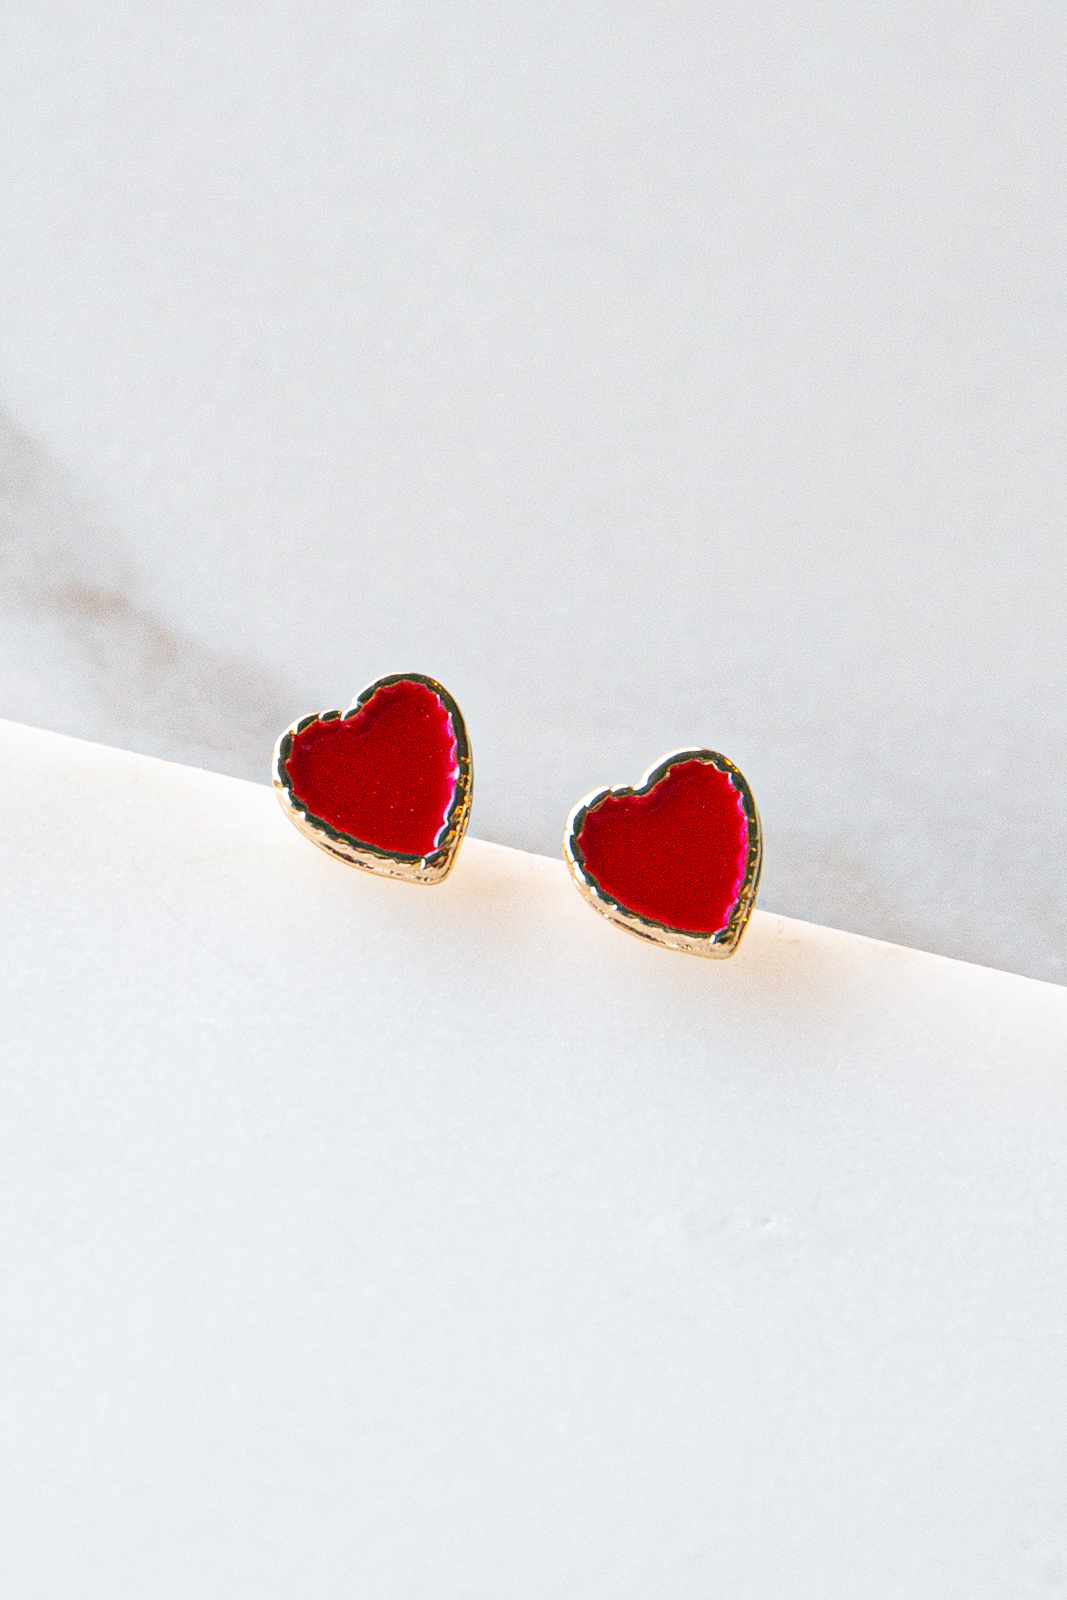 Tiny Gold Heart Shaped Stud Earrings with Cherry Red Enamel